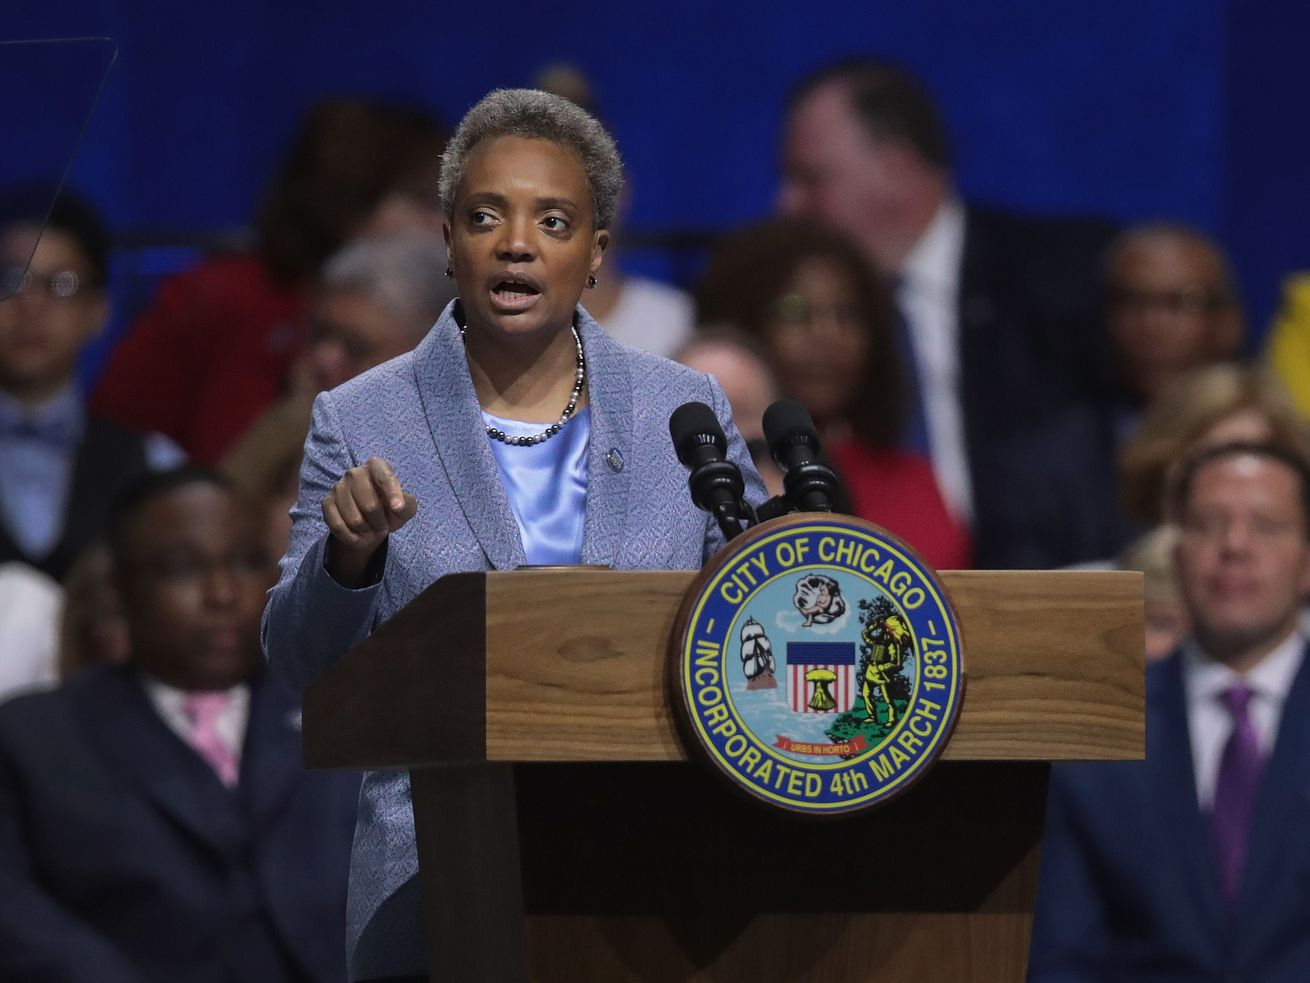 Mayor Lori Lightfoot addresses the audience at her inauguration.